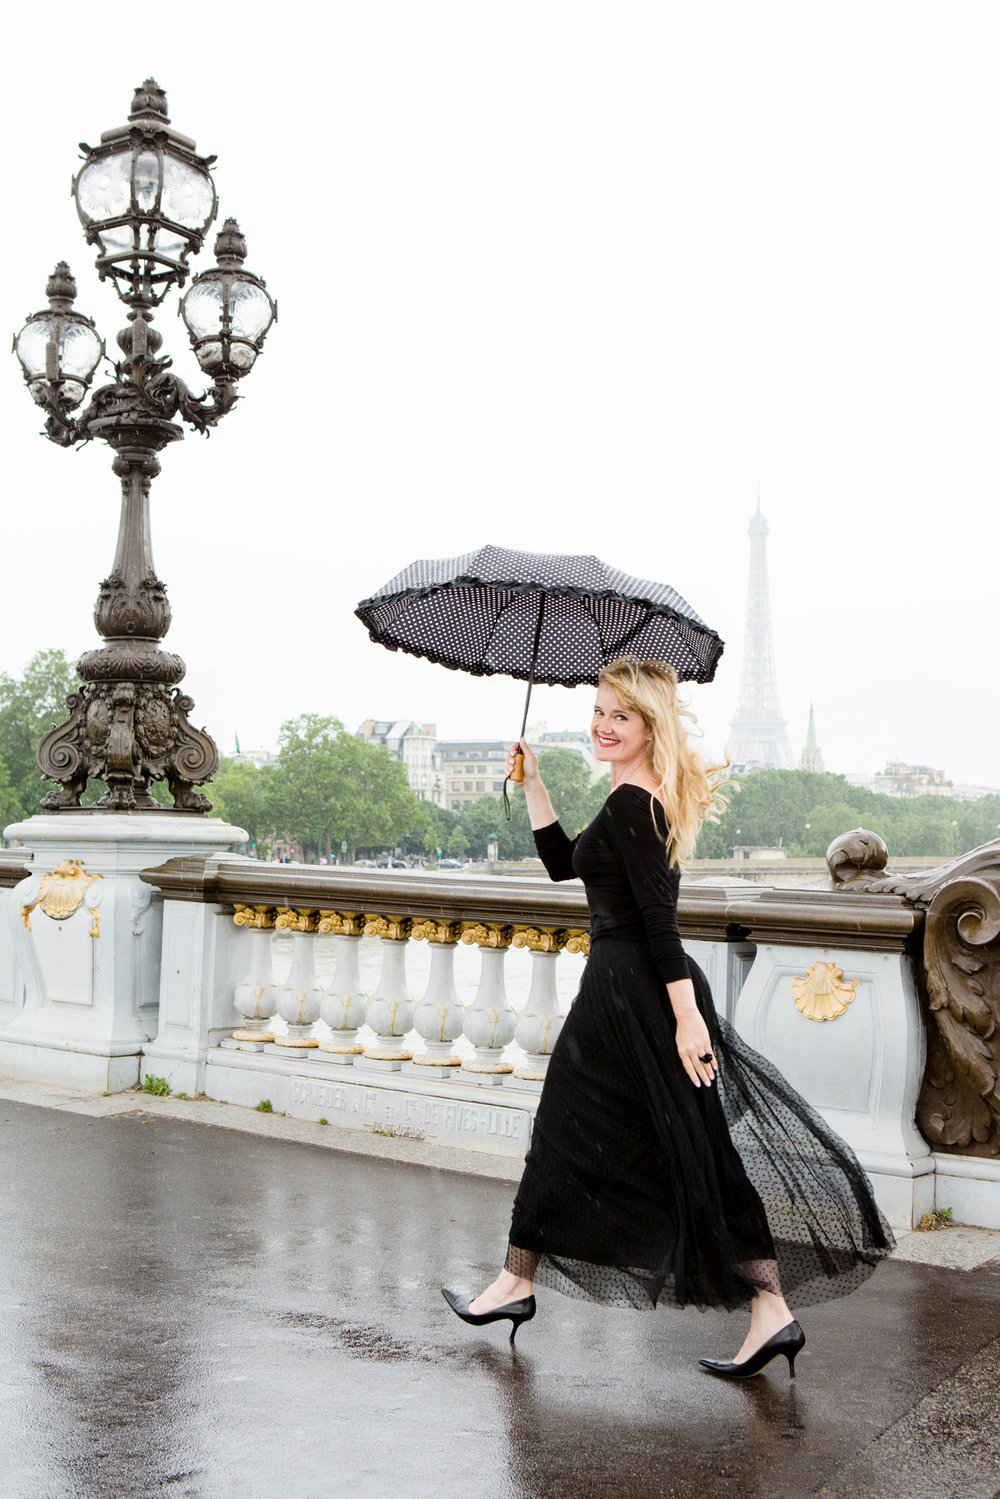 Kimberly paris with Umbrella